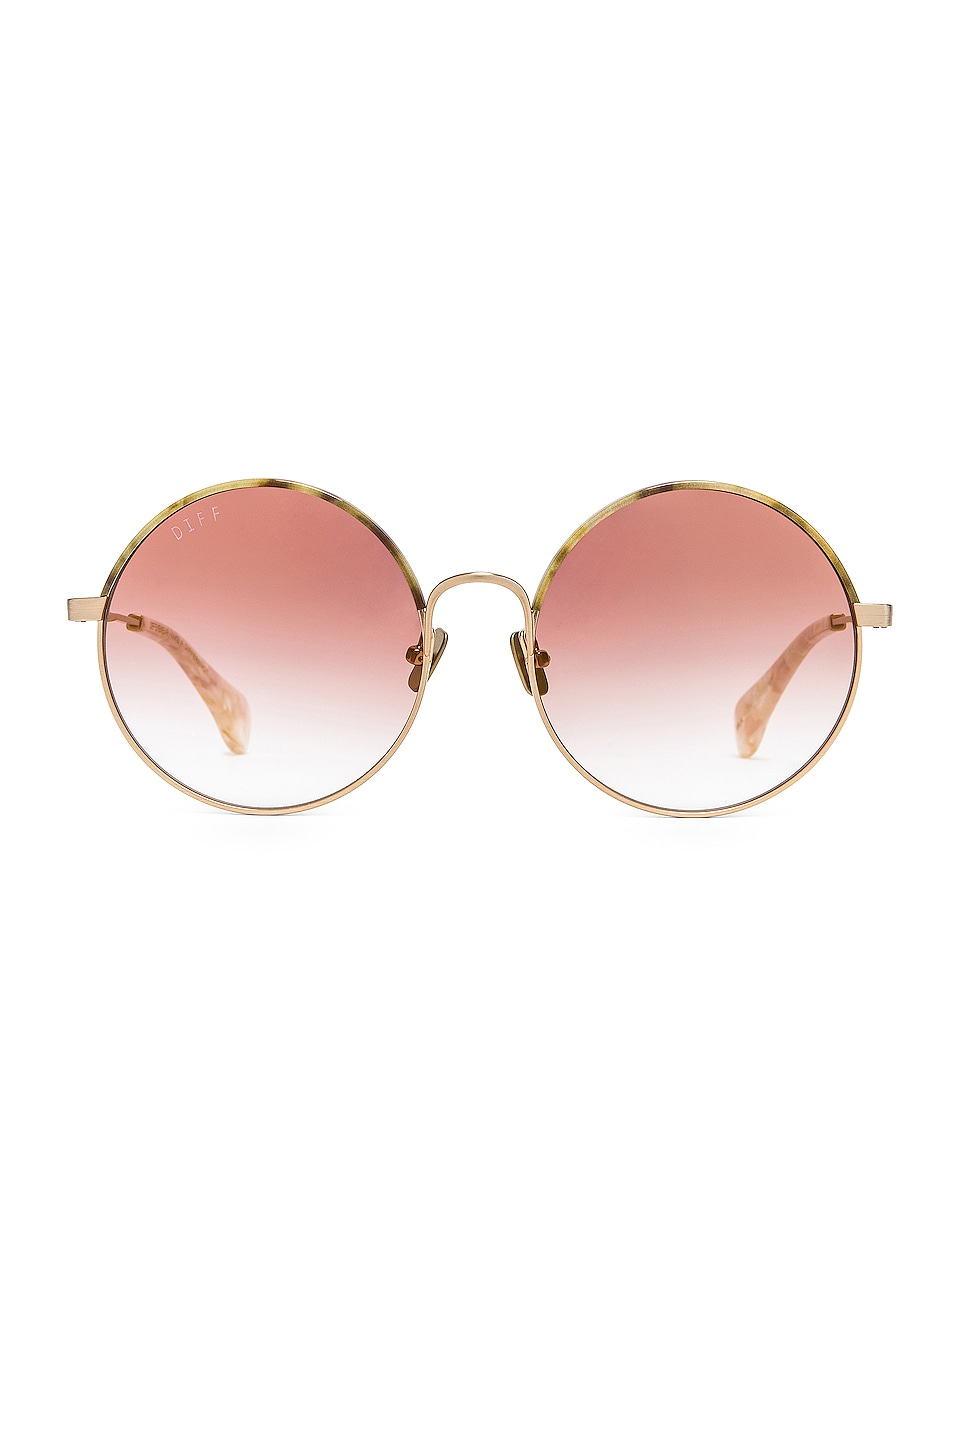 DIFF EYEWEAR Isla in Brushed Gold & Canyon Gradient Flash